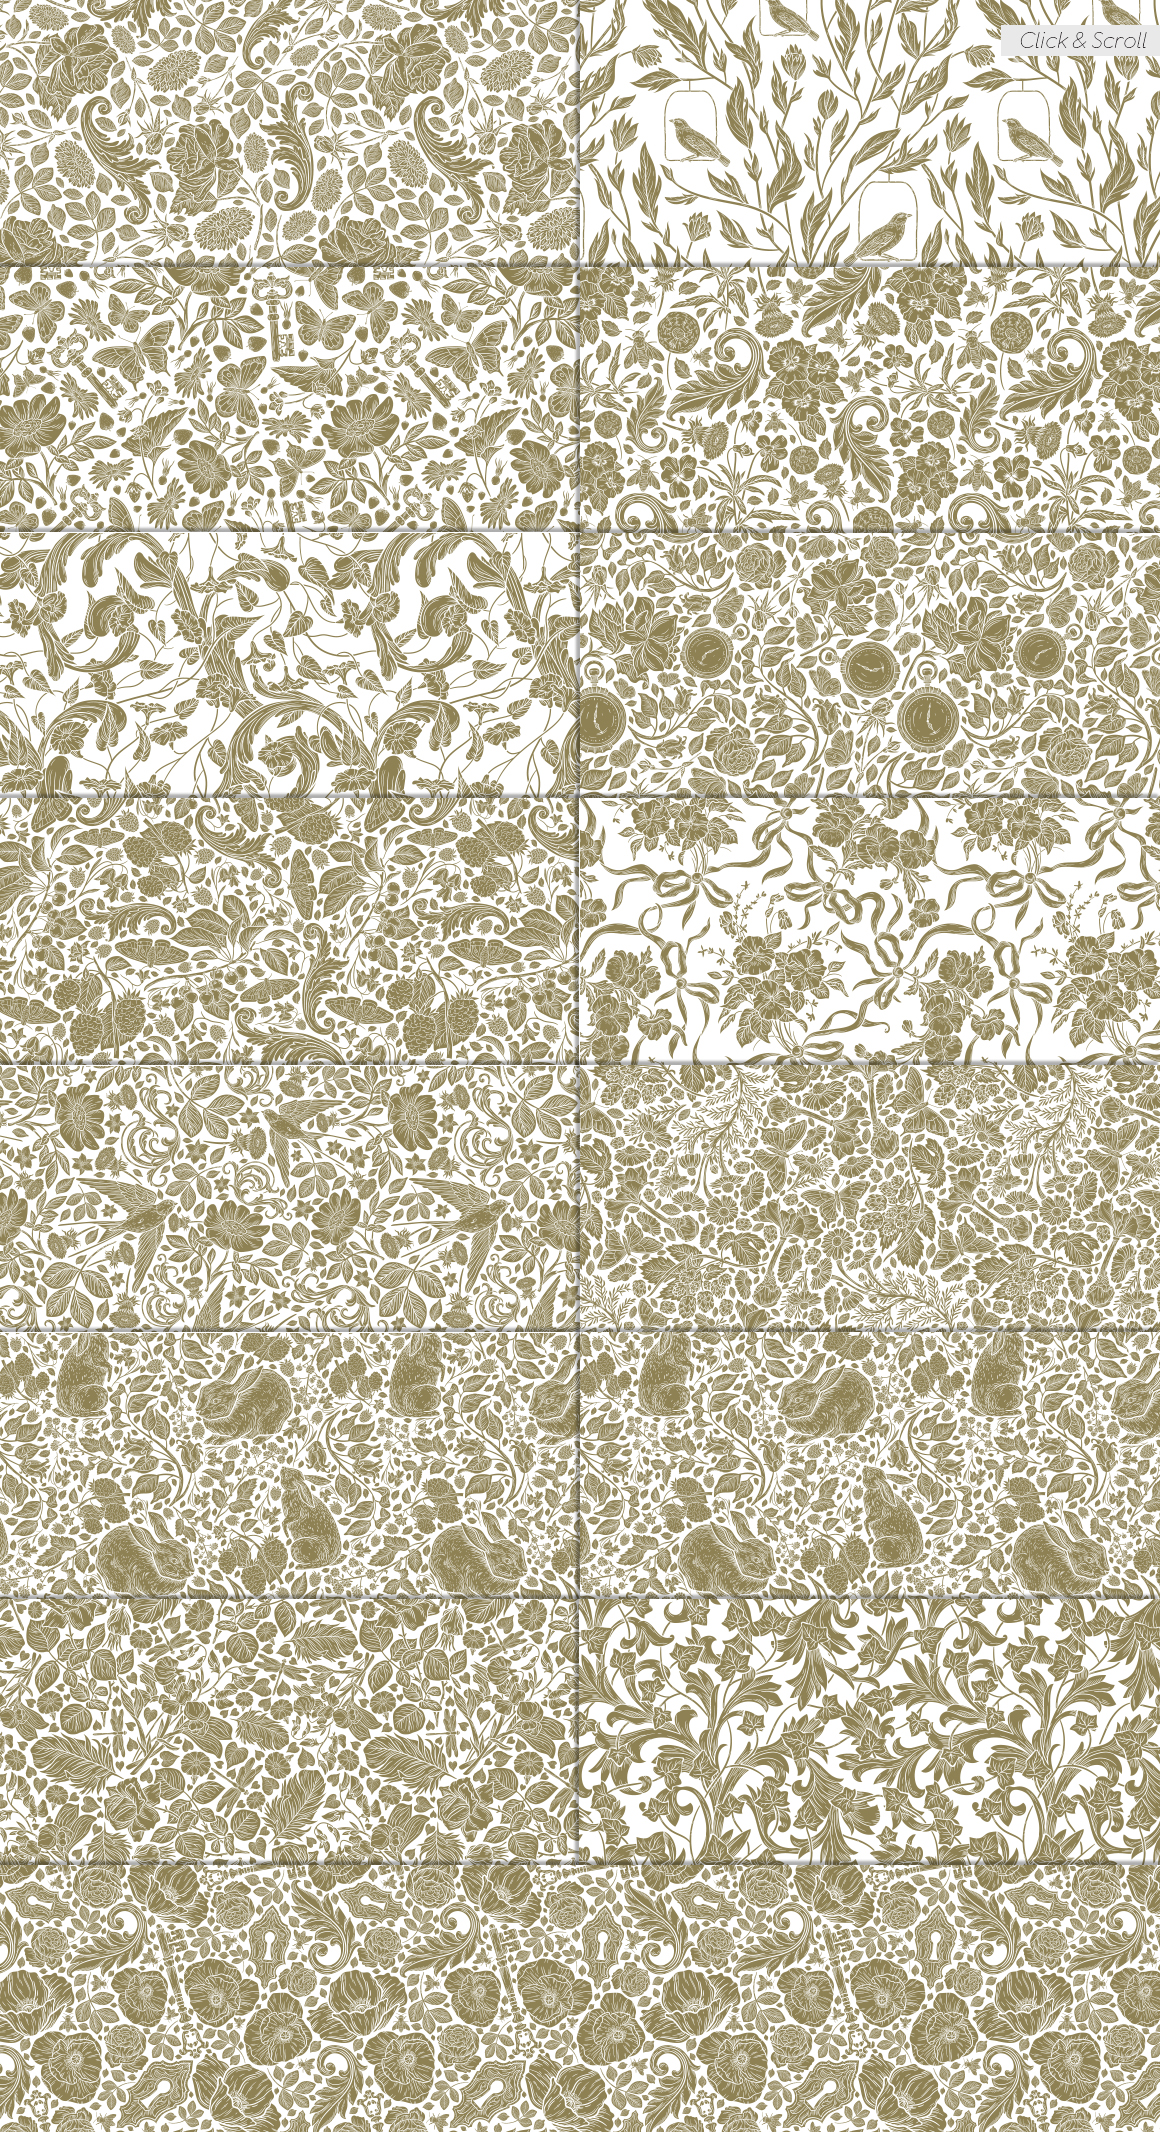 English Backyard patterns example image 5